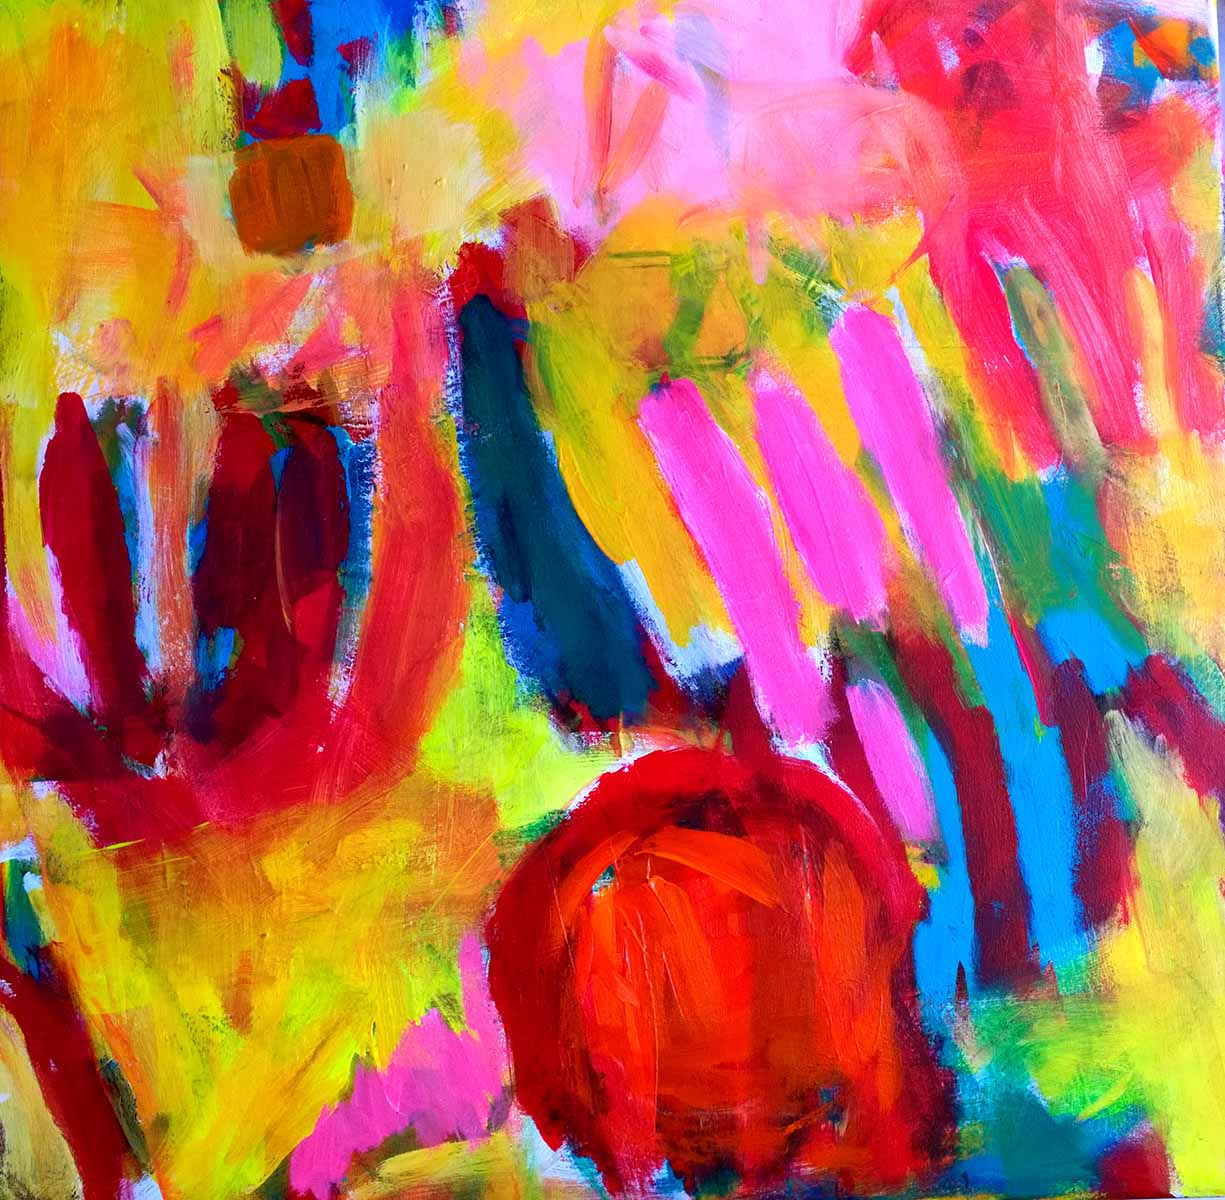 colour migrations no. 15/2016, acrylics/canvas, 70x70cm